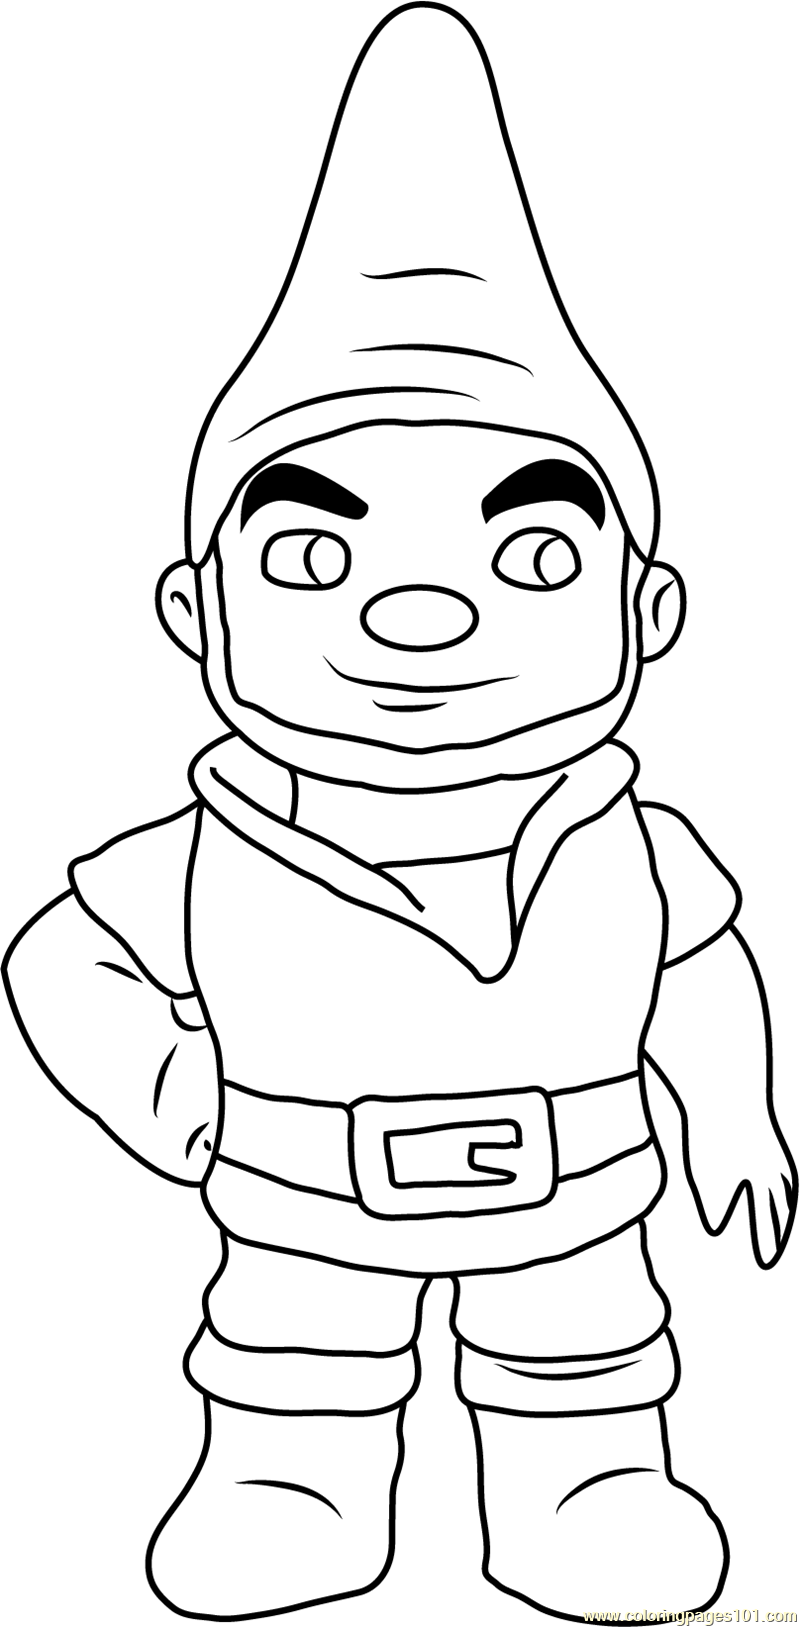 Gnomeo Coloring Page - Free Gnomeo & Juliet Coloring Pages ...